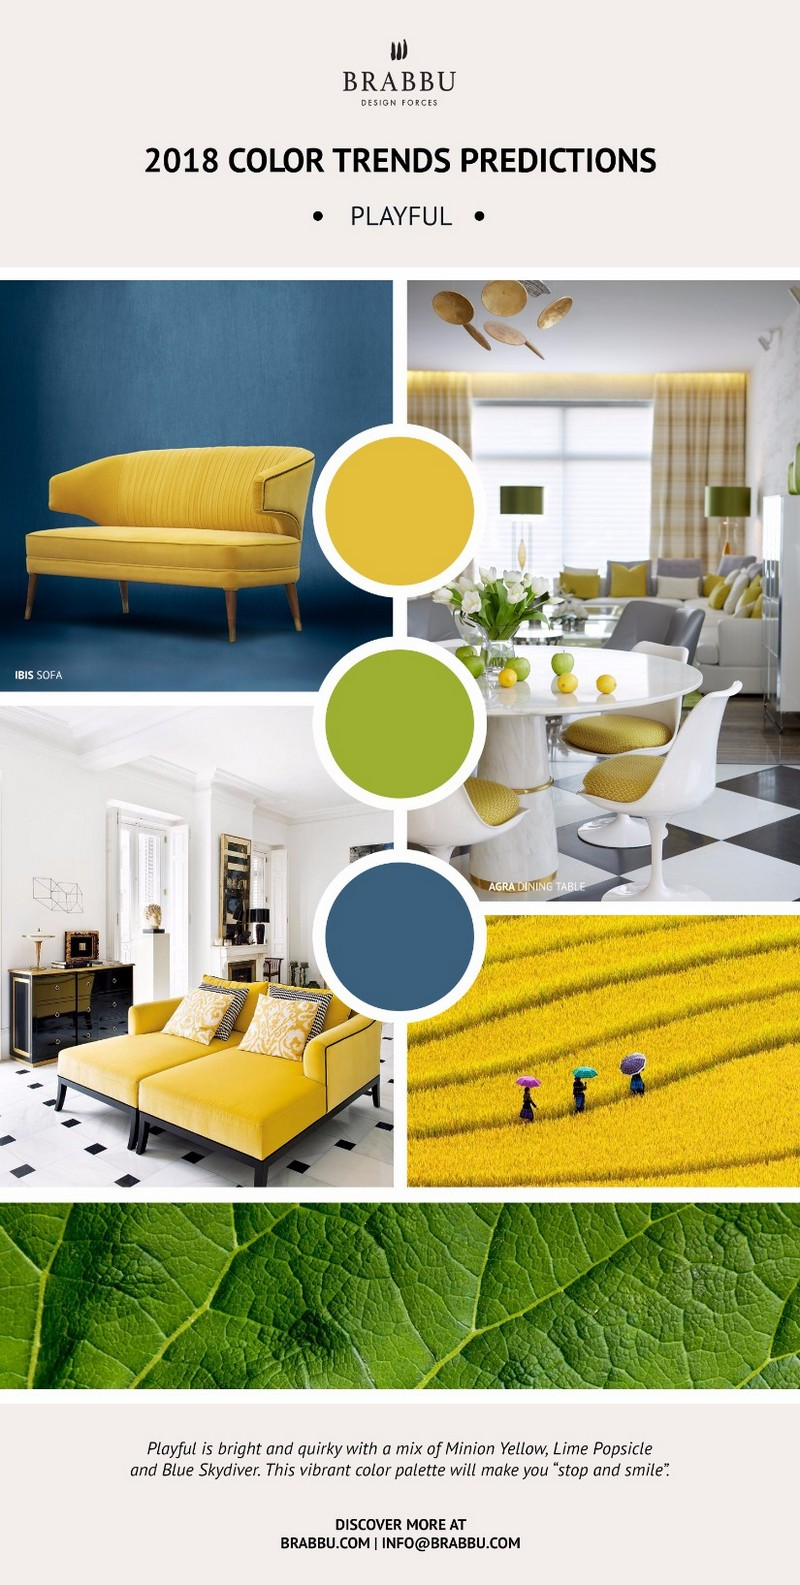 Decorate your interiors using pantones 2018 colour trends predictions 5 decorate your interiors Home architecture trends 2018